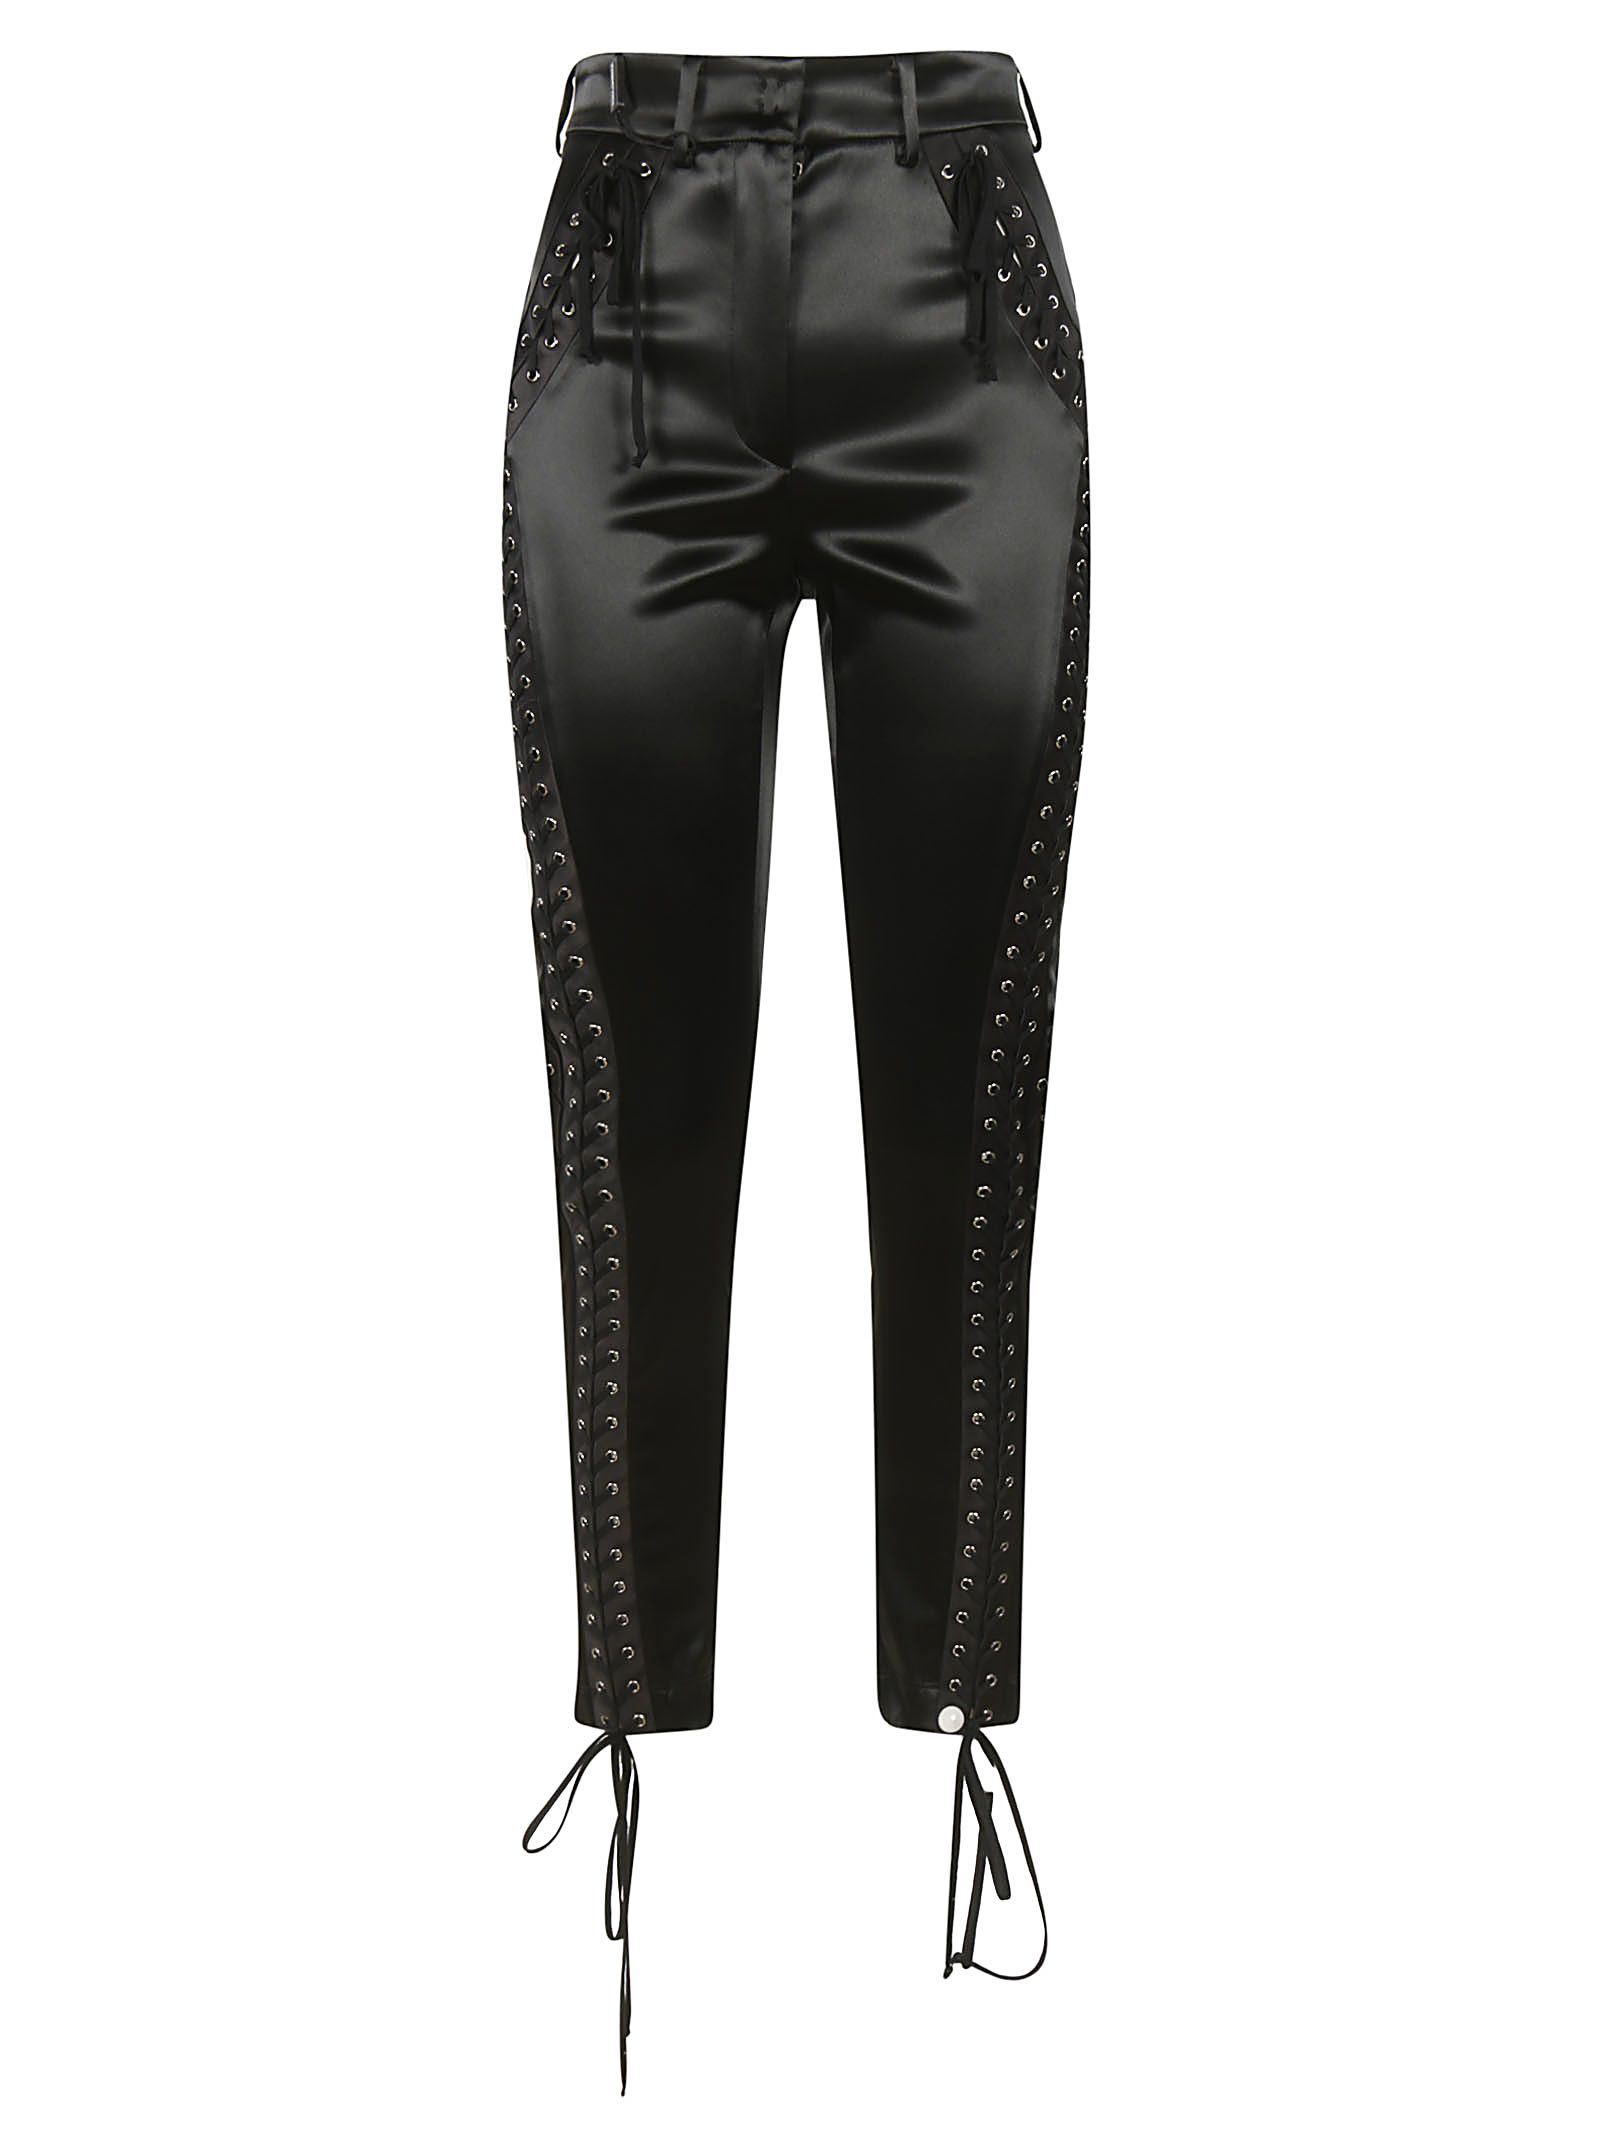 Dolce & Gabbana Lace-up Detail Trousers